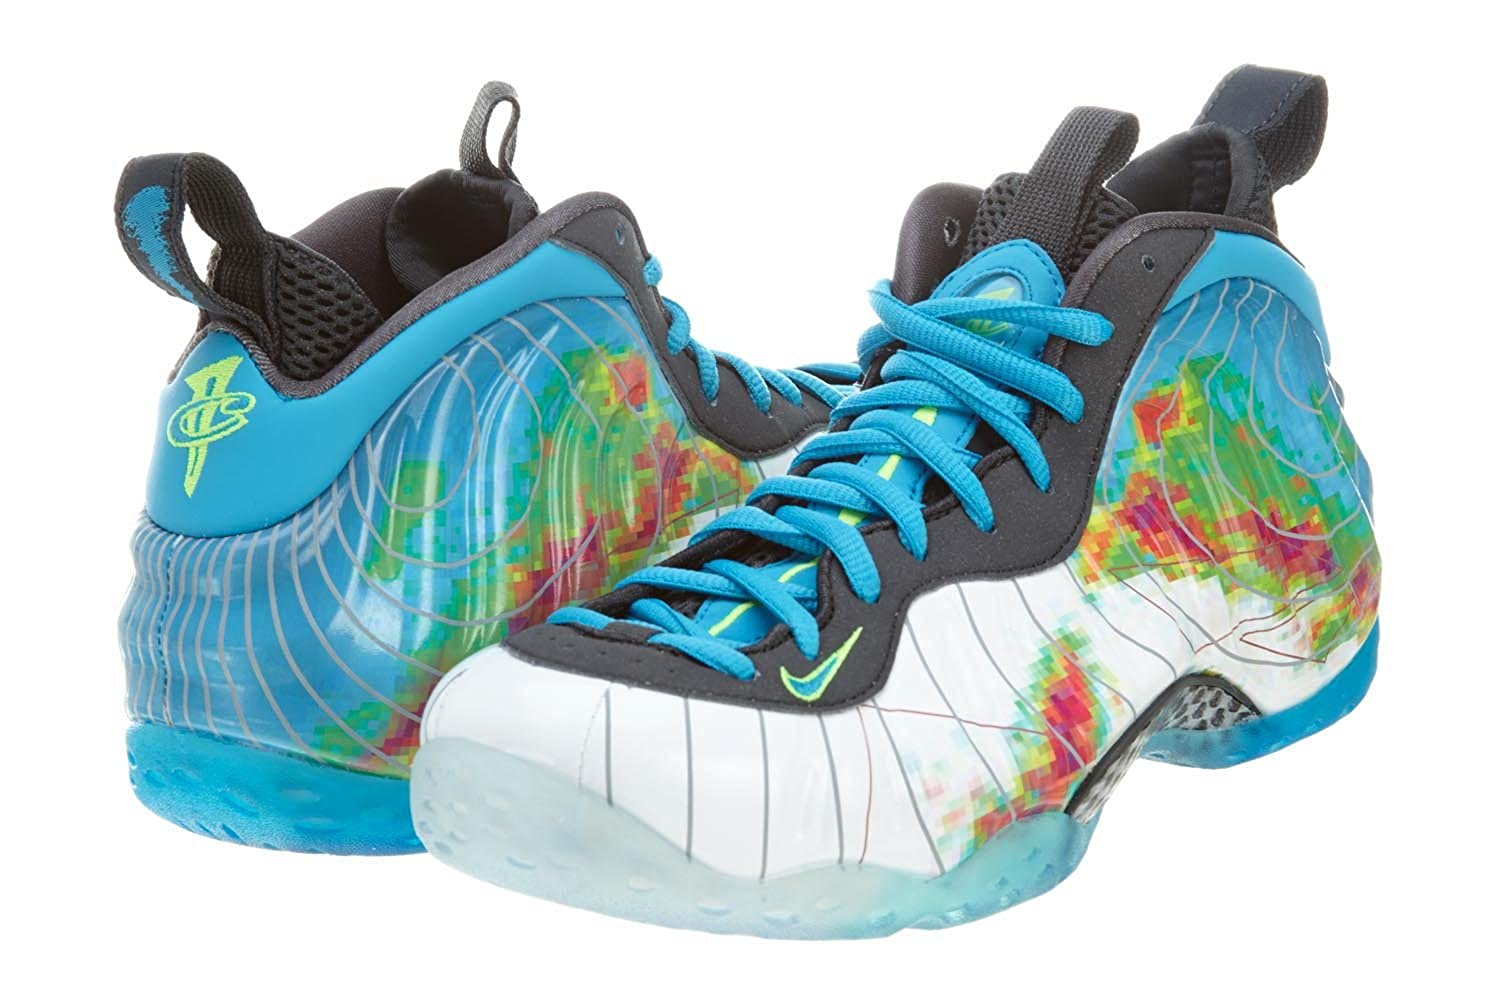 [NIKE - ナイキ] AIR FOAMPOSITE ONE PRM 'WEATHERMAN' - 575420-100 (メンズ) B00EWT3Z6Q  13